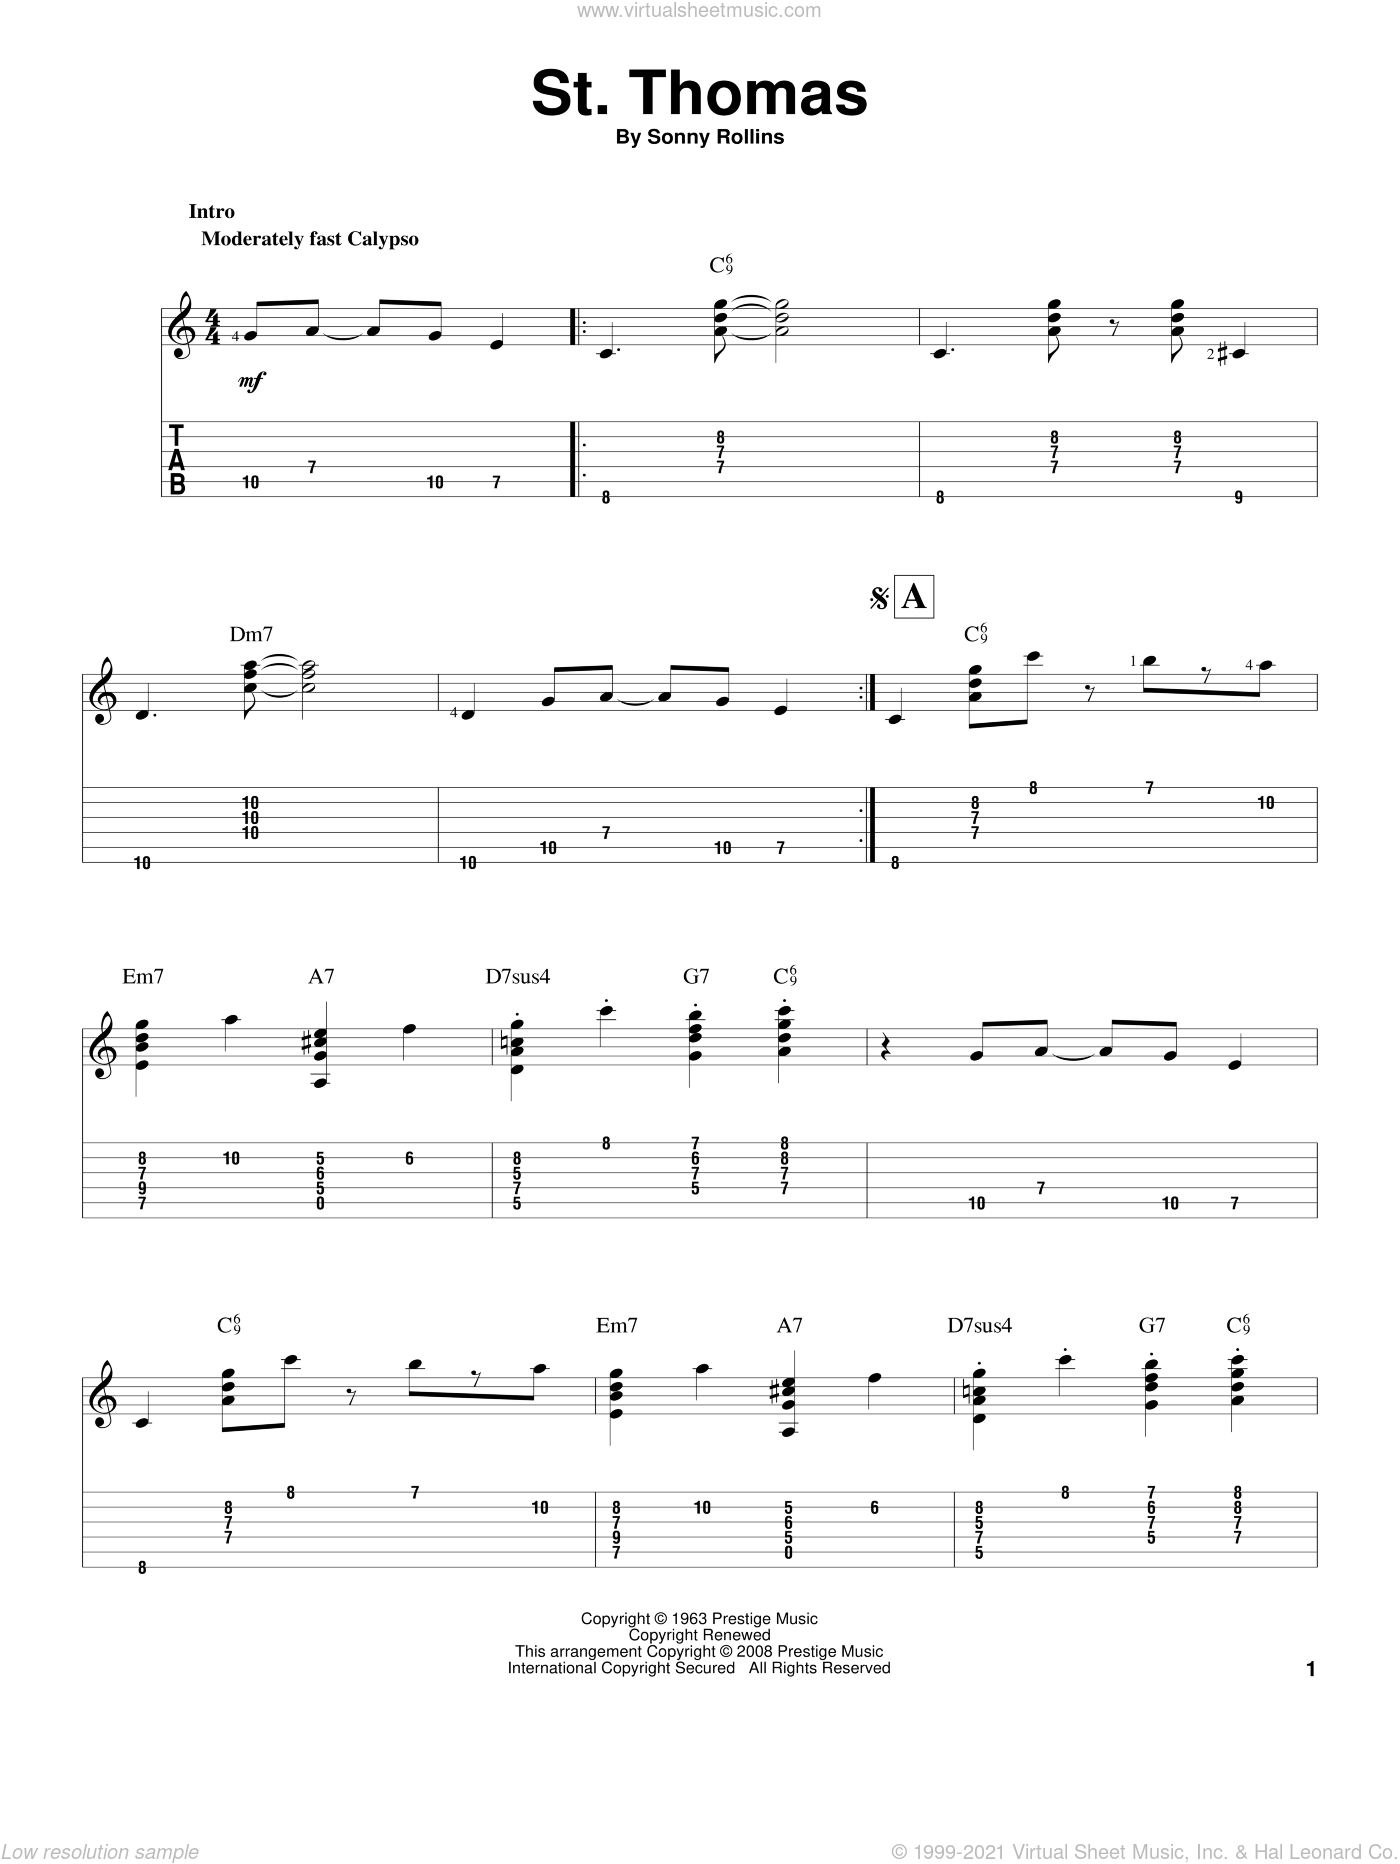 St. Thomas sheet music for guitar solo by Sonny Rollins